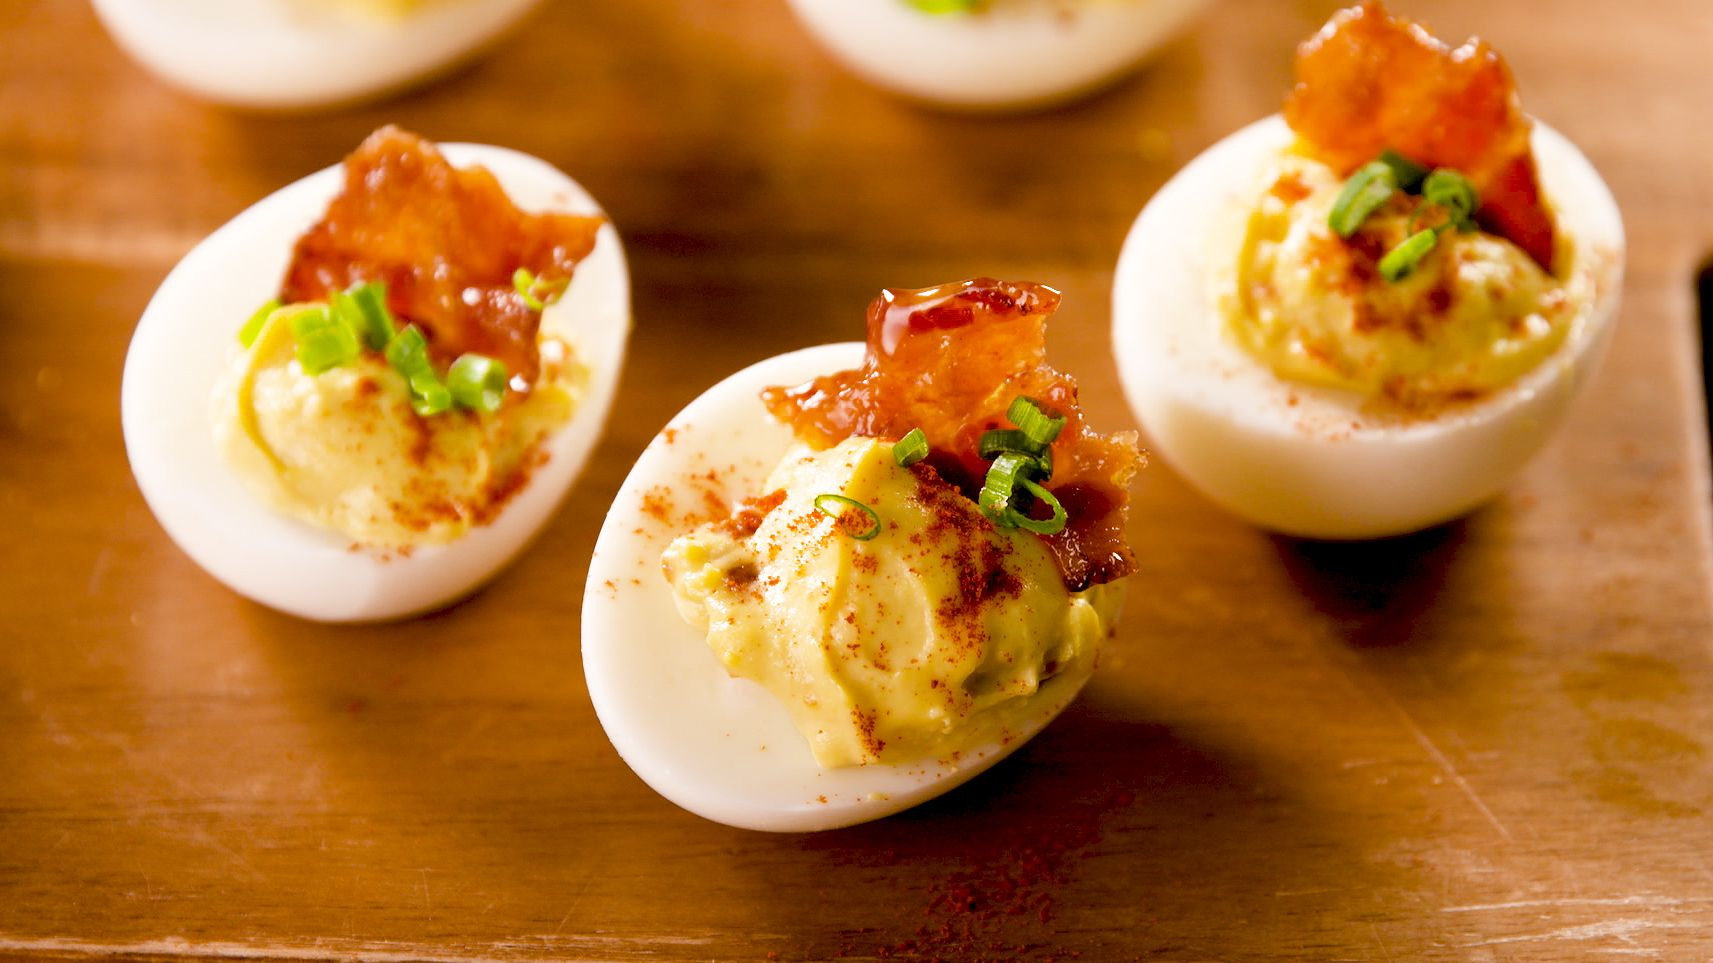 This Devilled Egg With Maple Bacon Recipe Is All You Need This Summer